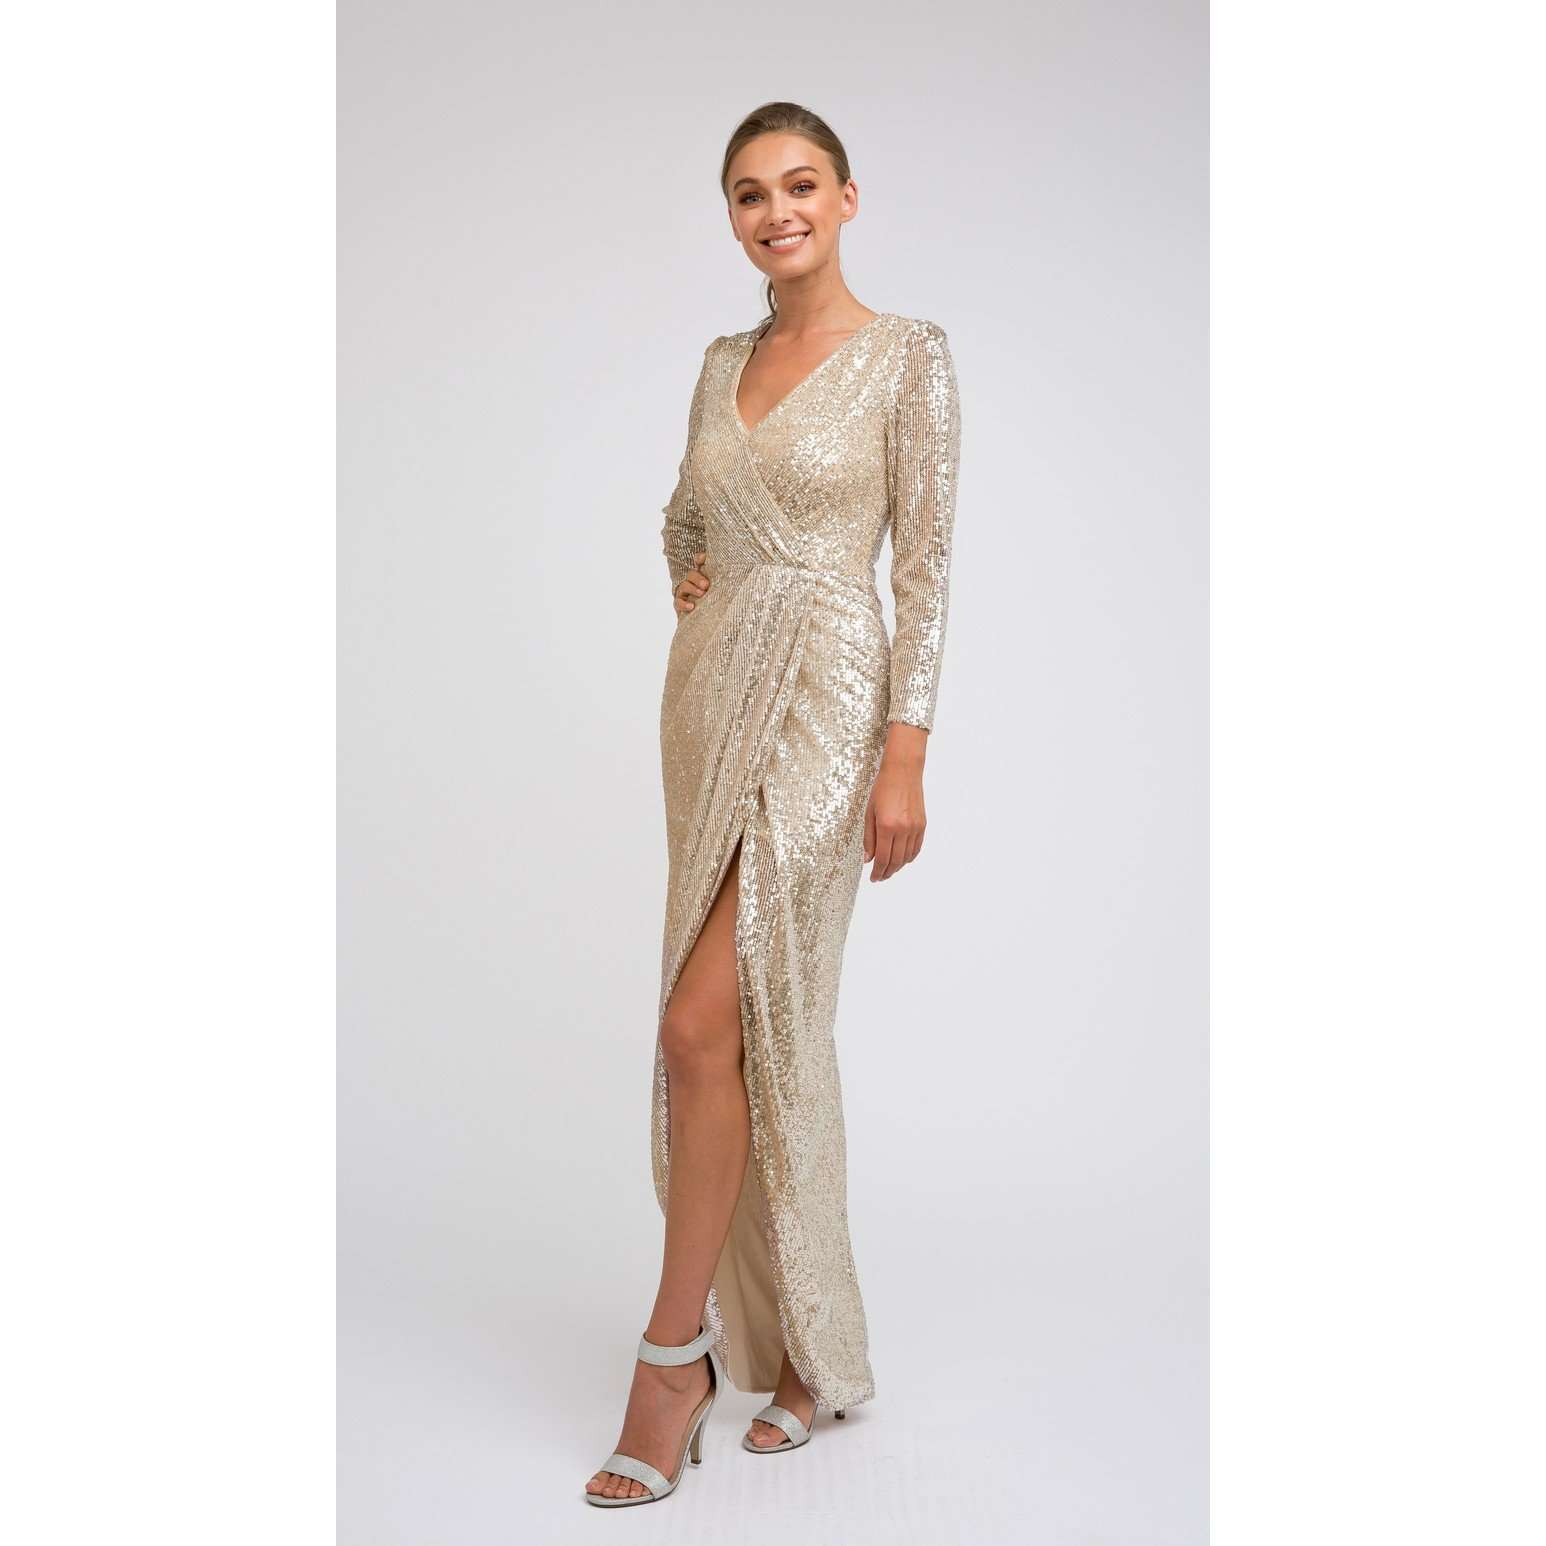 Long Sleeve Sequin Prom Evening Dress 231 - Julietdresses